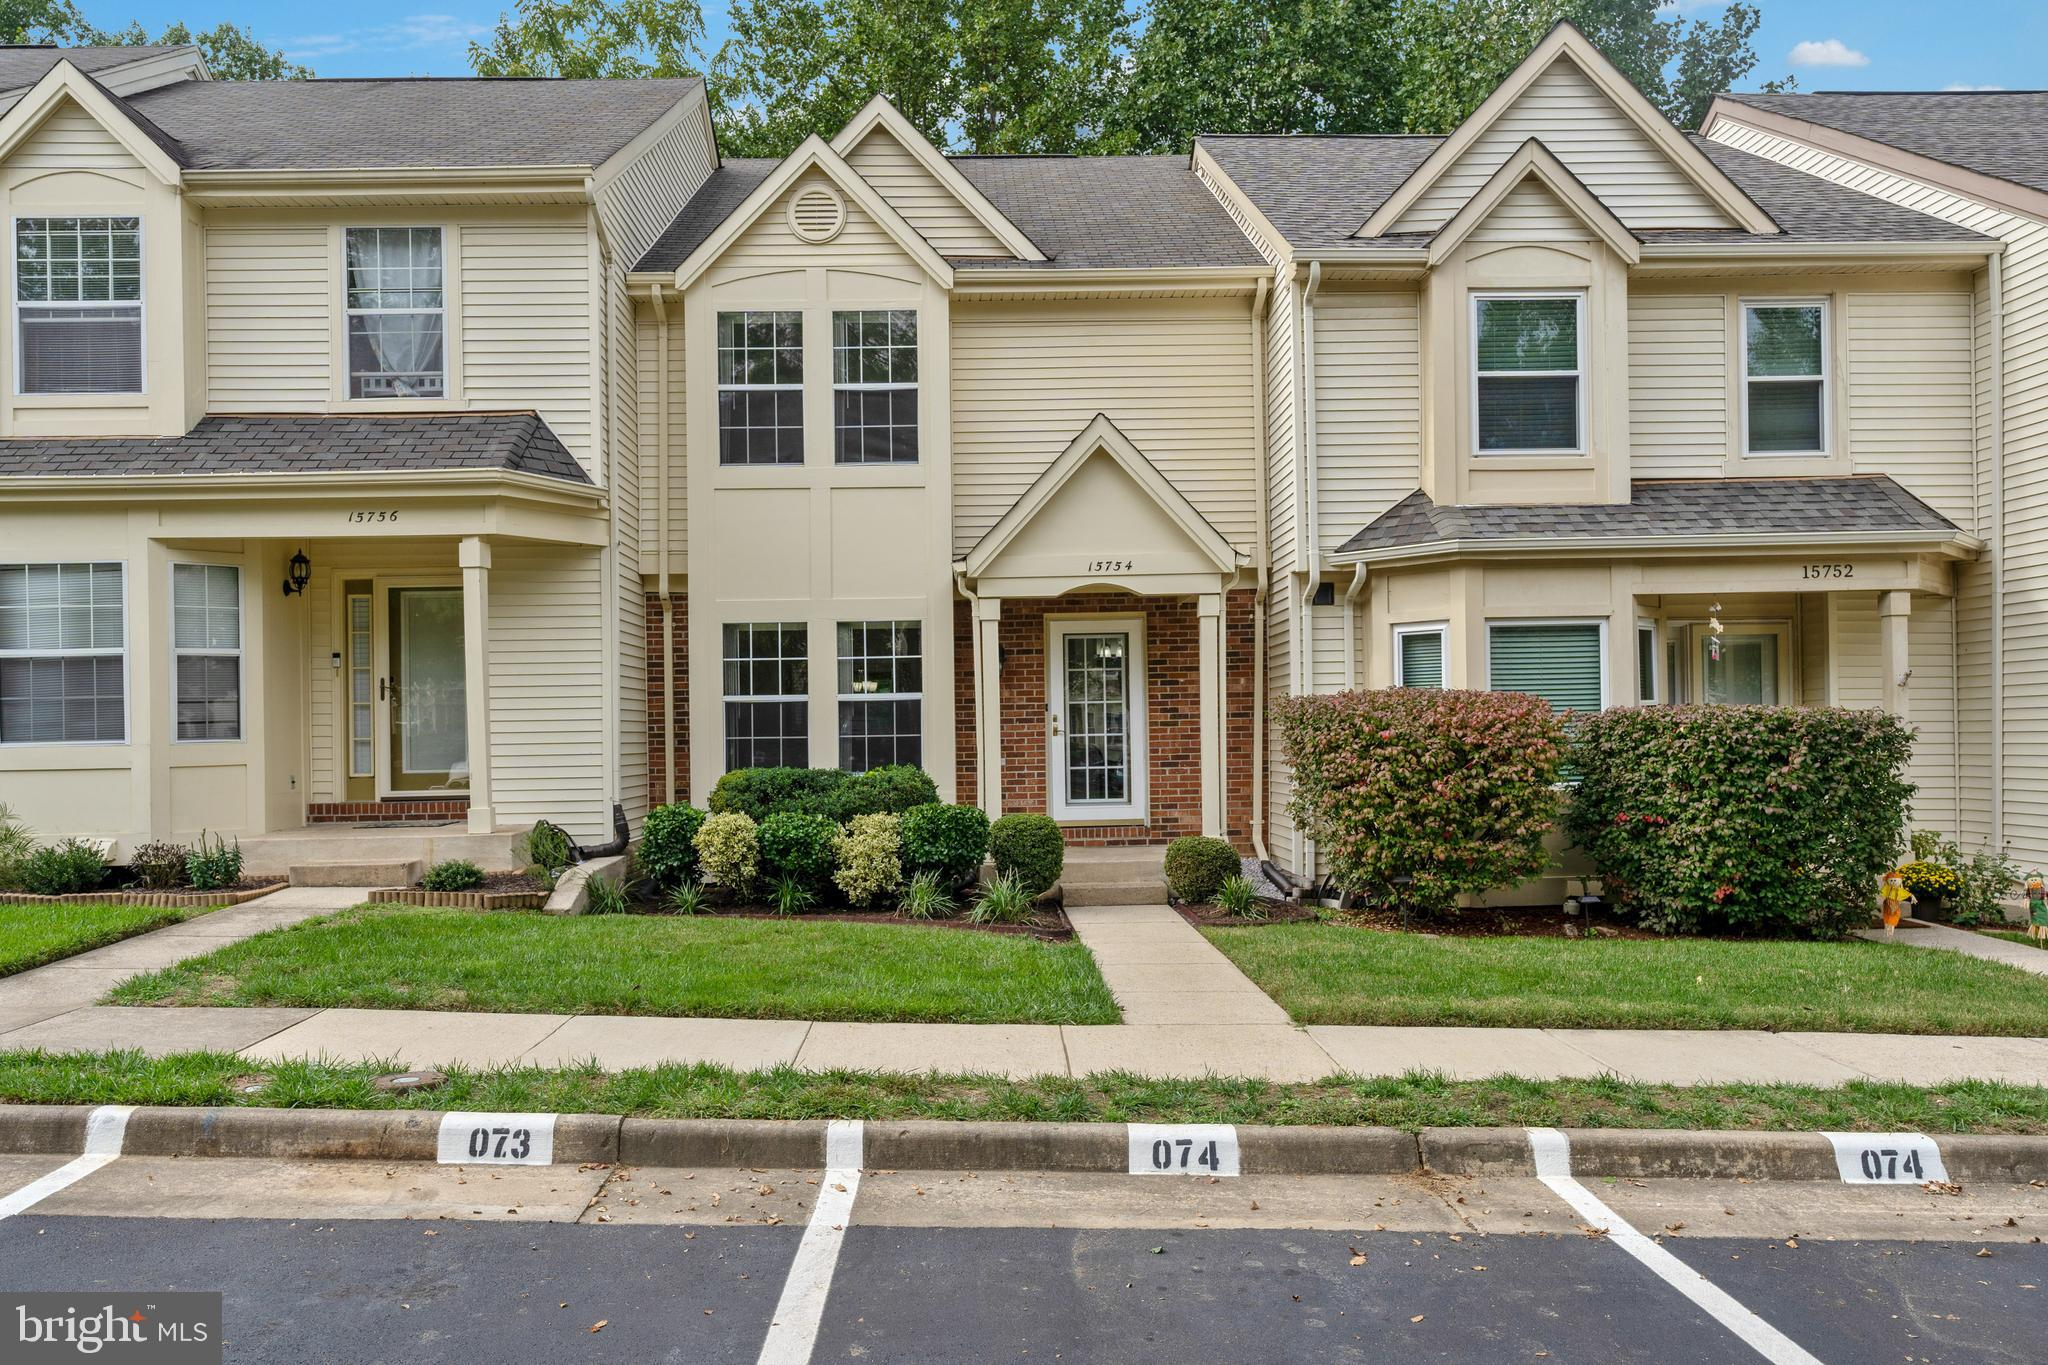 Beautiful 3 Bed 3 1/2 Bath Townhome in the sought after Montclair Community. New Carpet, Fresh Paint